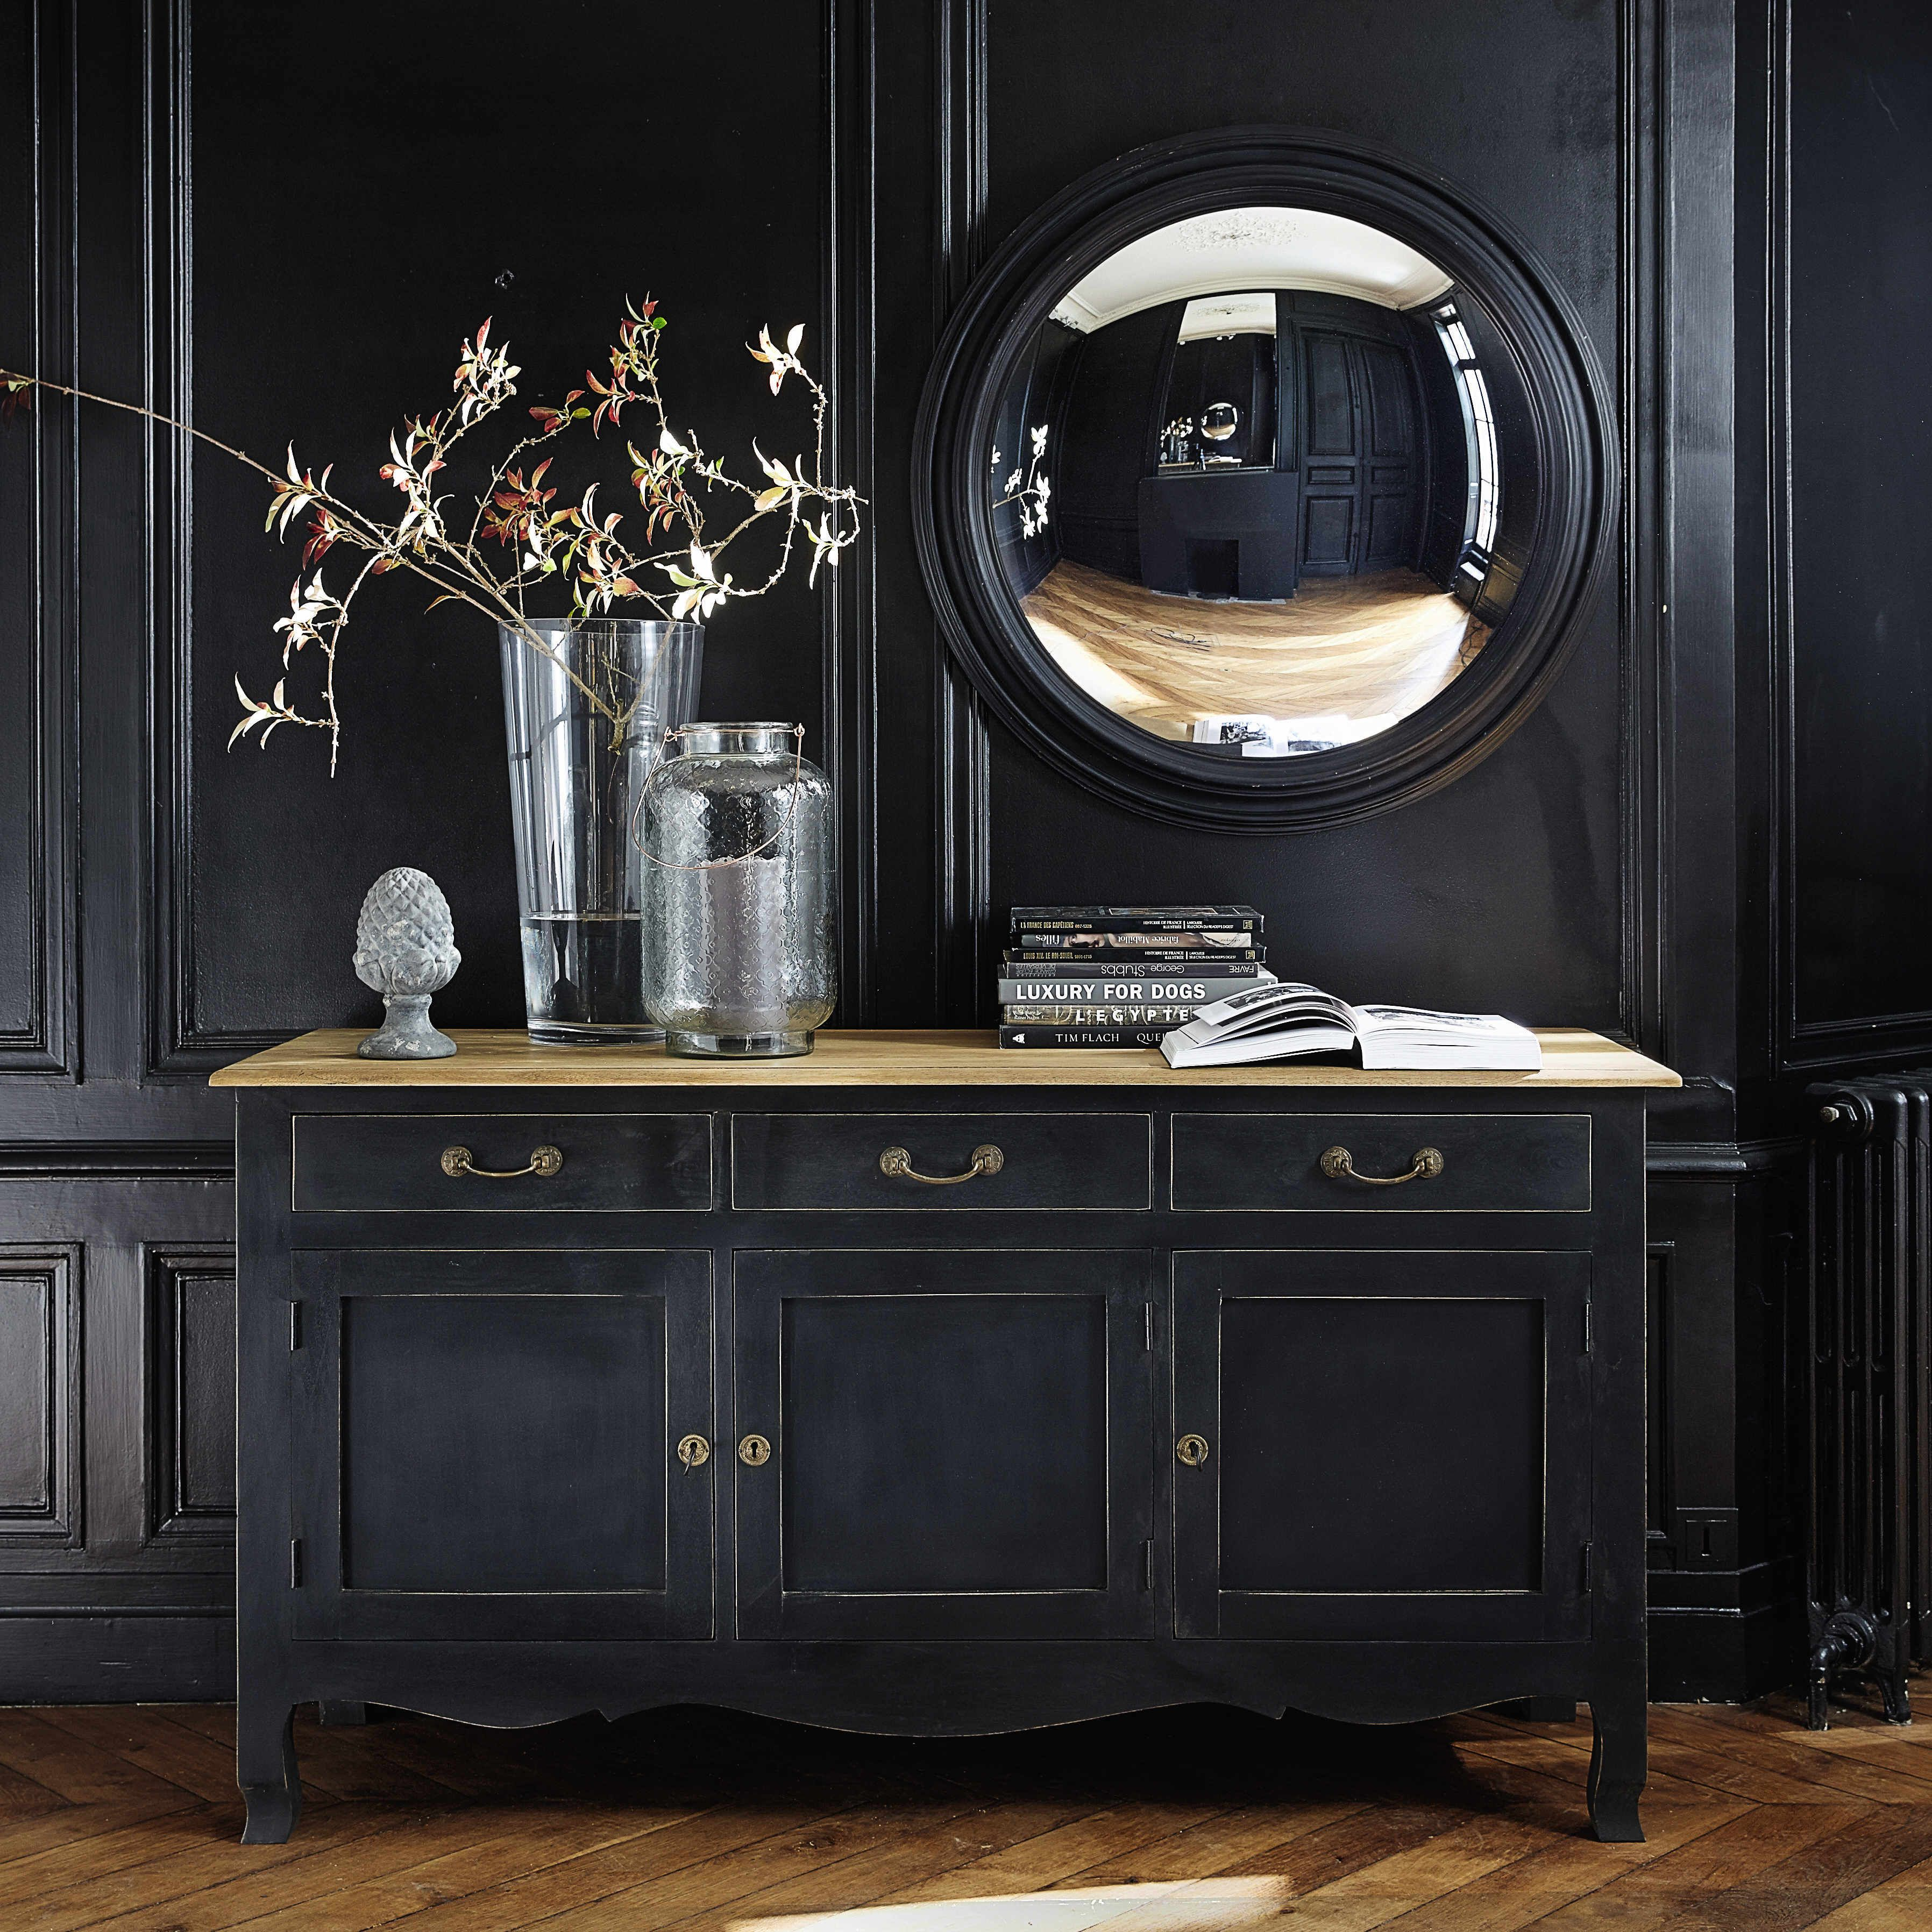 miroir convexe en bois noir d 90 cm vendome maisons du monde salle manger pinterest. Black Bedroom Furniture Sets. Home Design Ideas